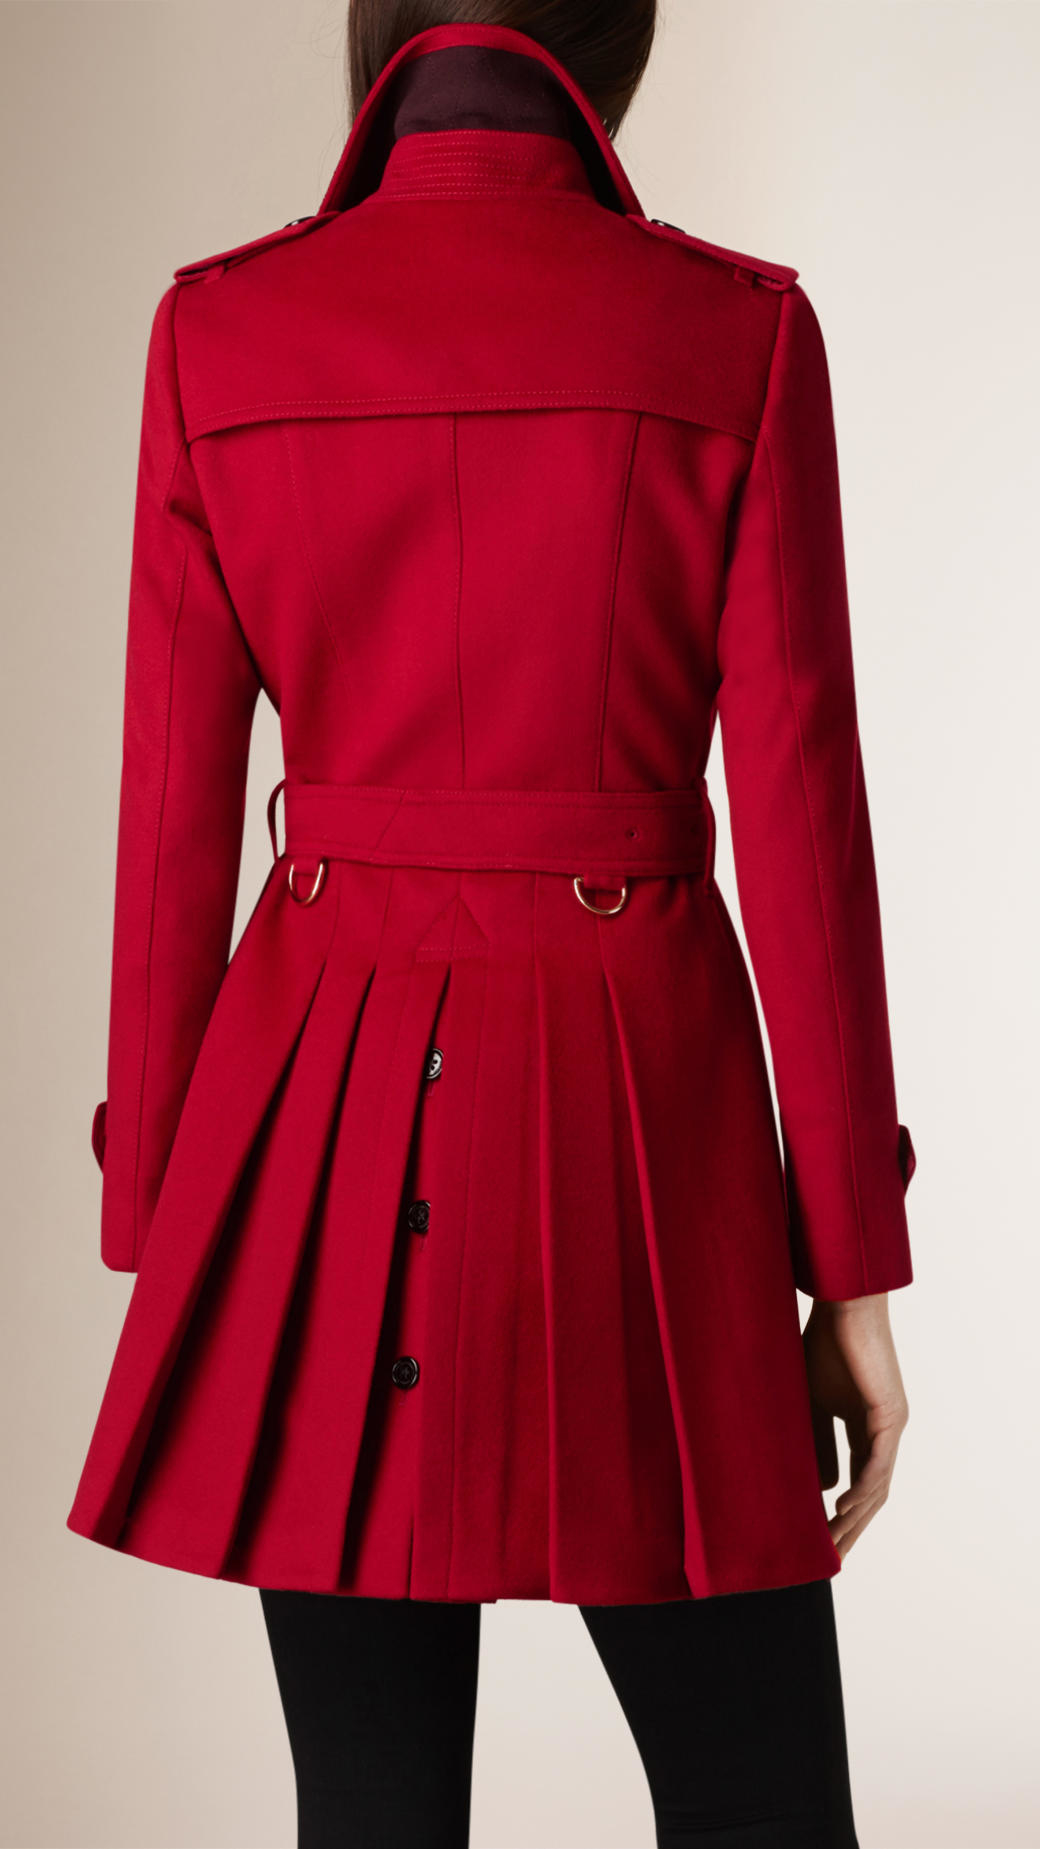 Trench Detail Red Burberry Pleat Coat Wool Cashmere Lyst In UXHPgAxwnq 40f585a8e10